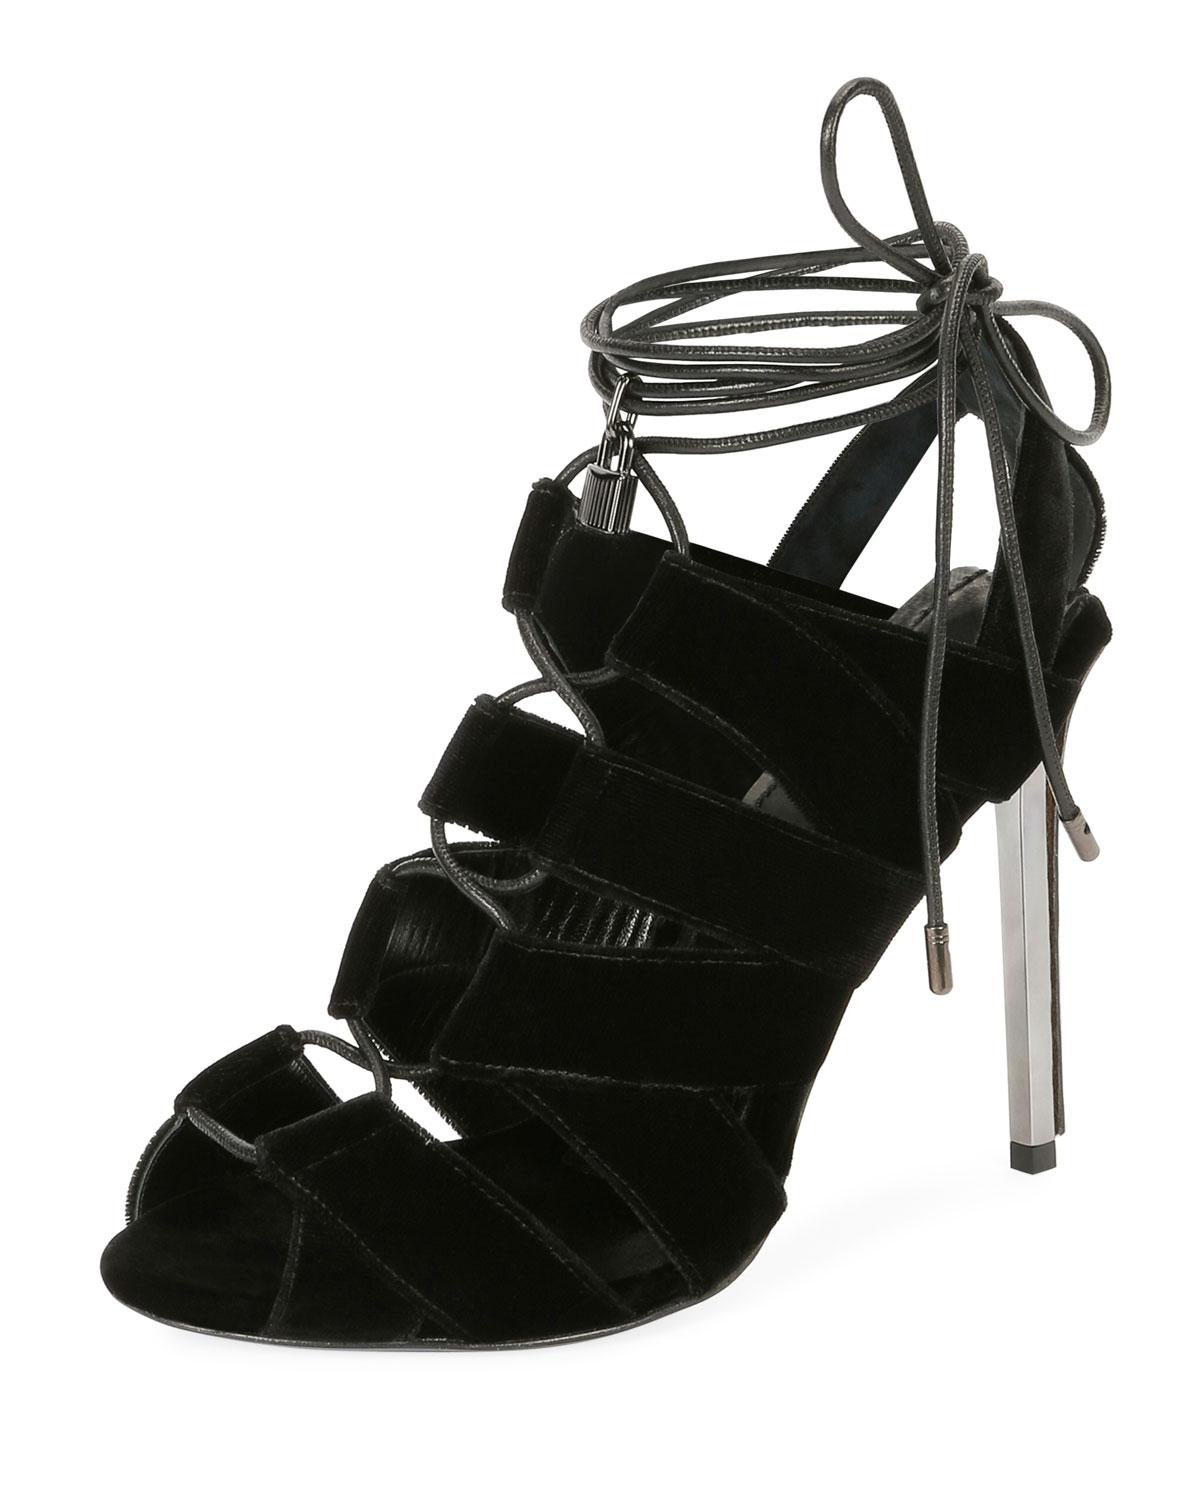 7c8da7353a0a Lyst - Tom Ford Velvet Cutout Lace-up Sandal Black in Black